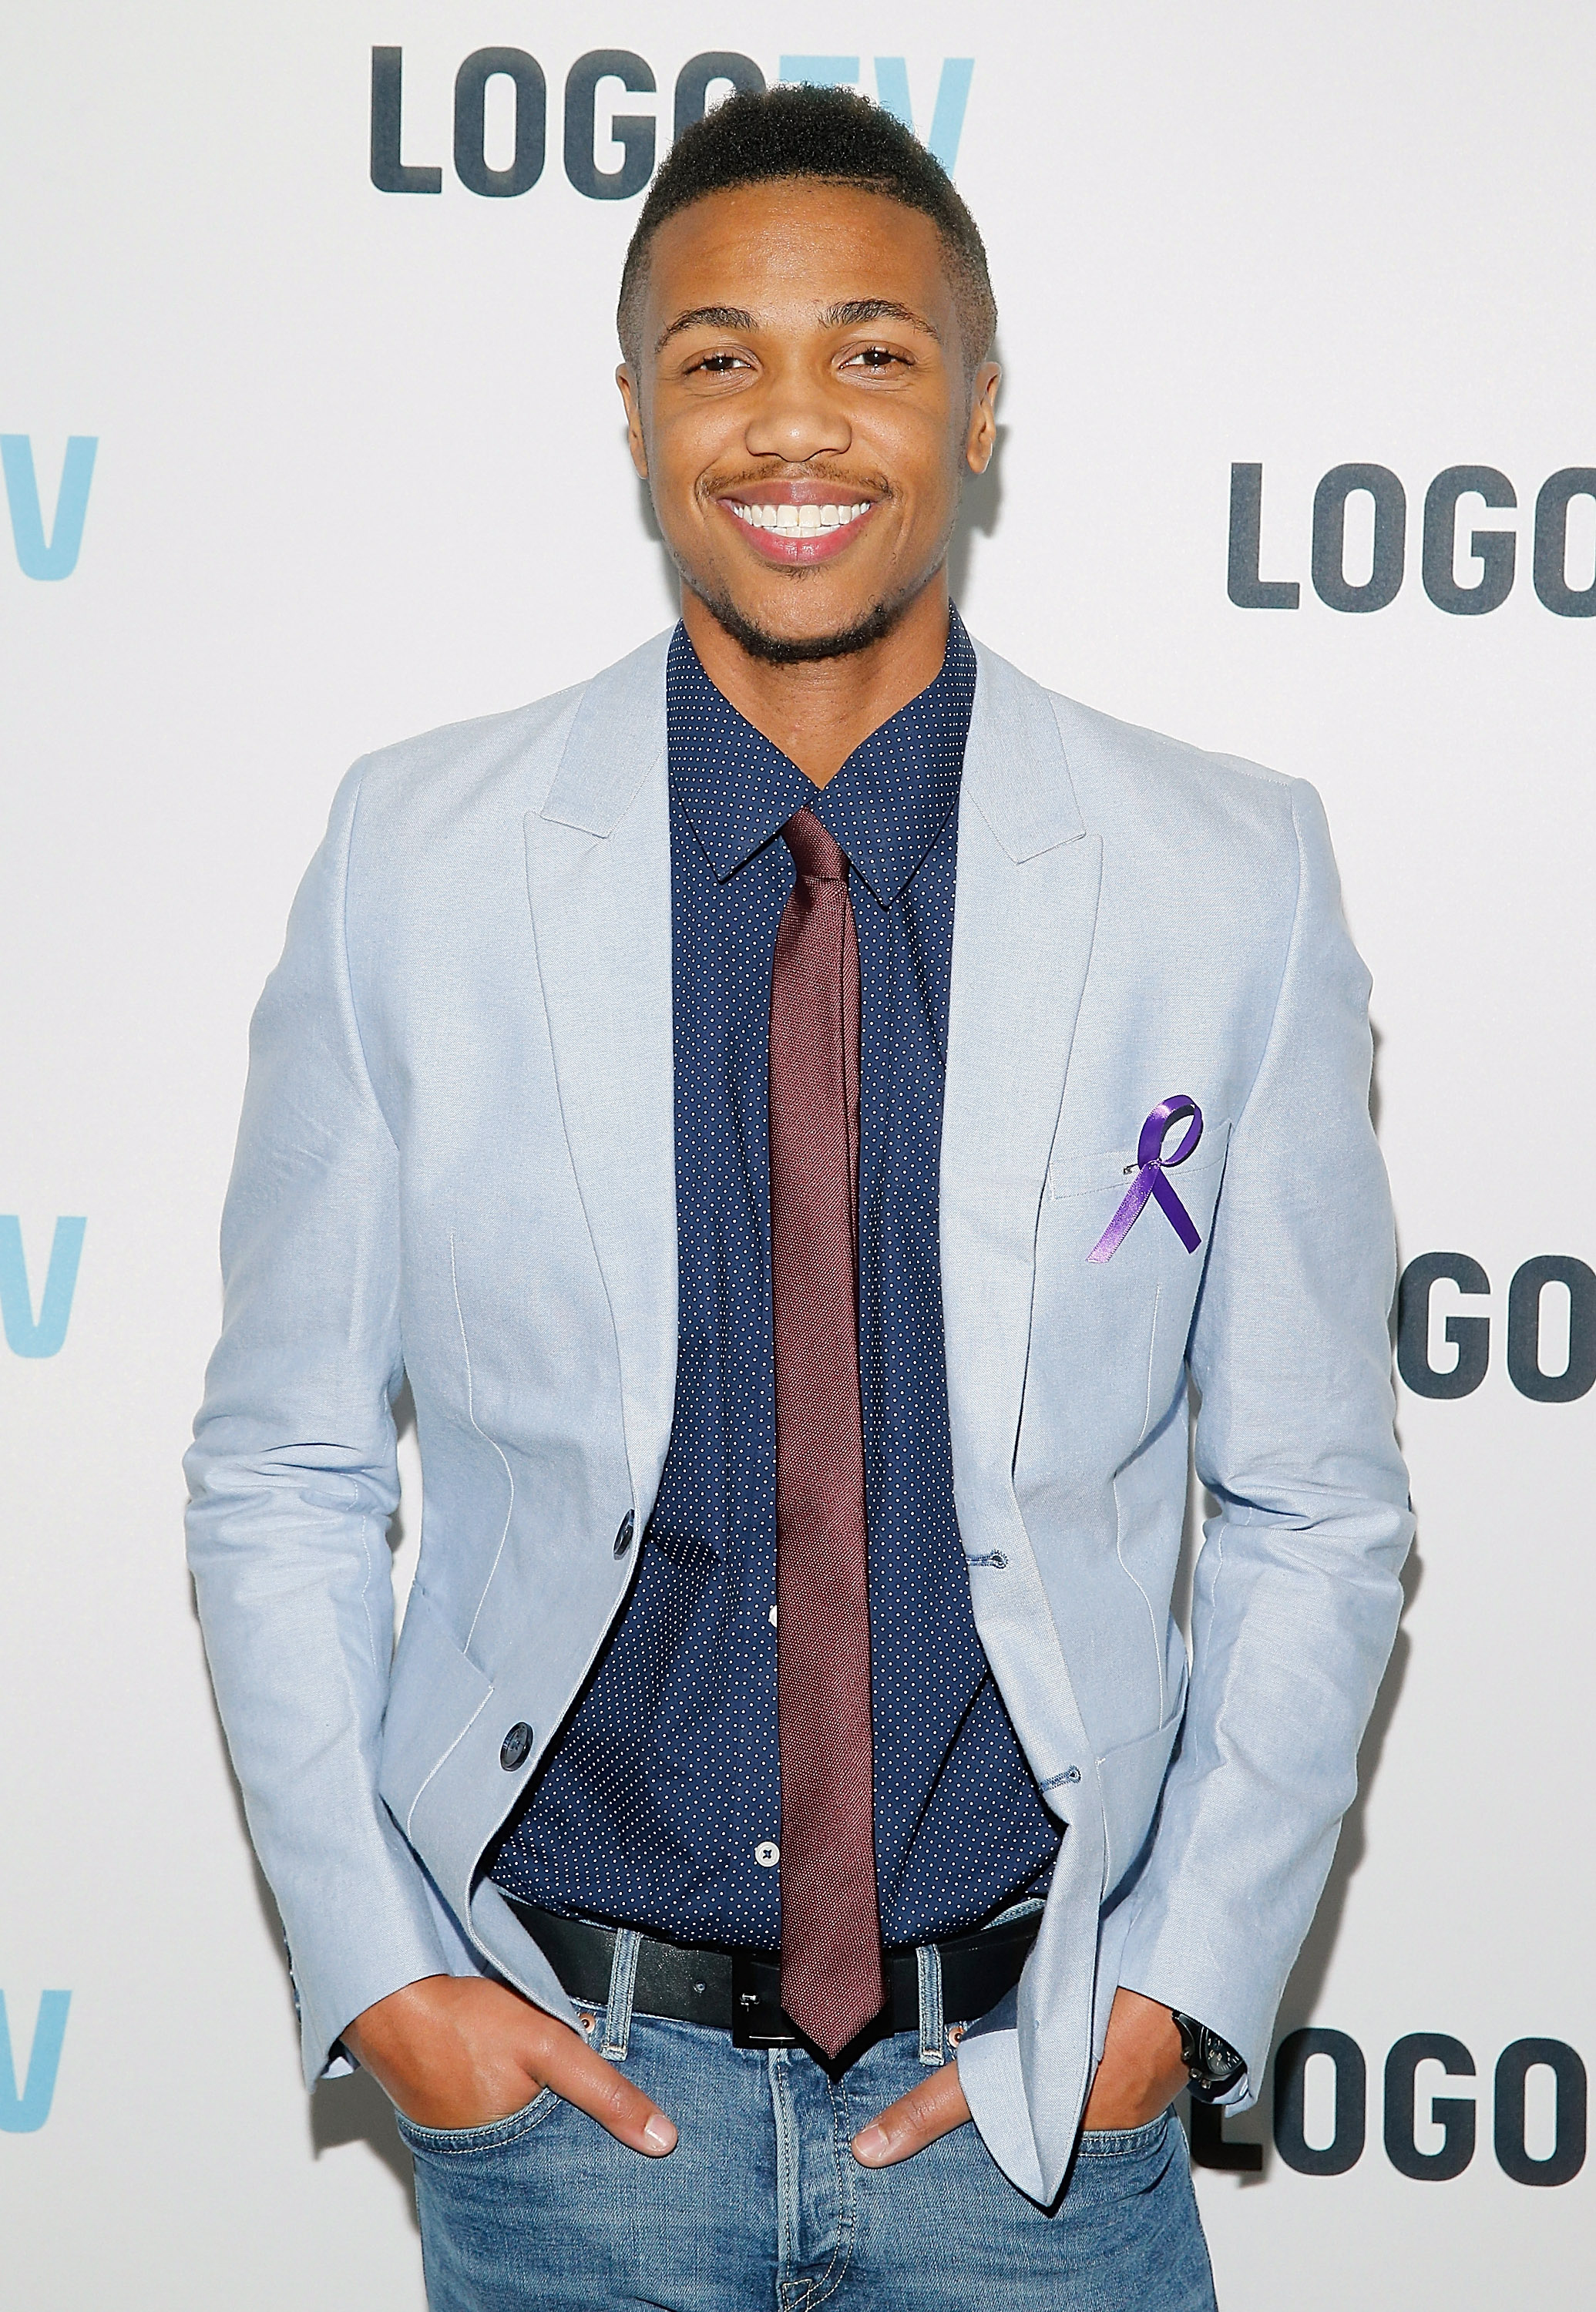 Kye Allums became the first openly transgender athlete in NCAA Division 1, the top level of college athletics, when he played on the women's team at George Washington University in 2010.